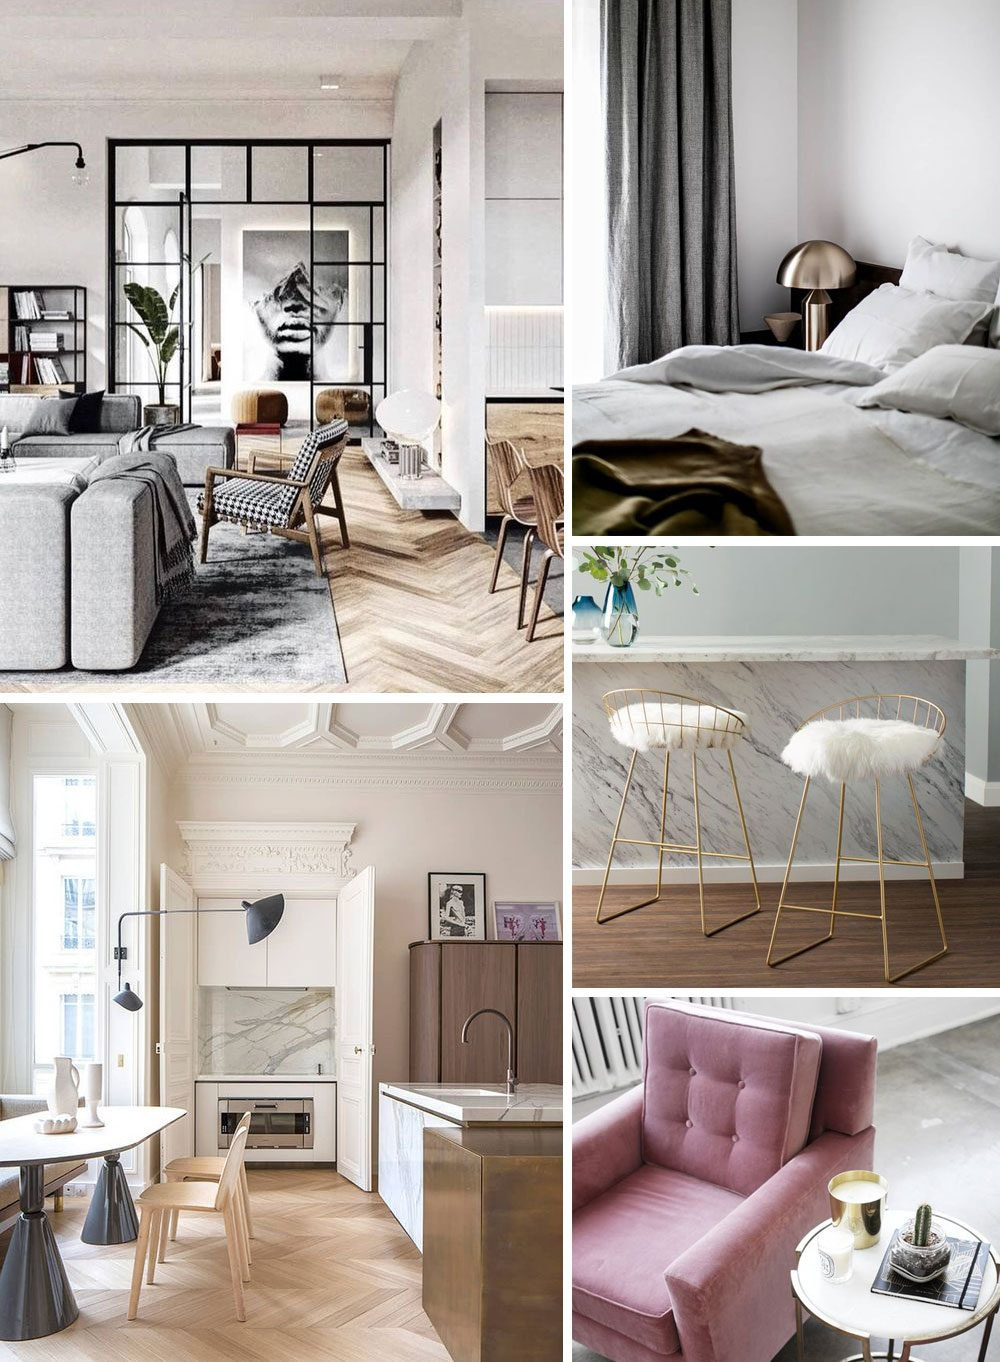 moodboard from affordable interior e-design service